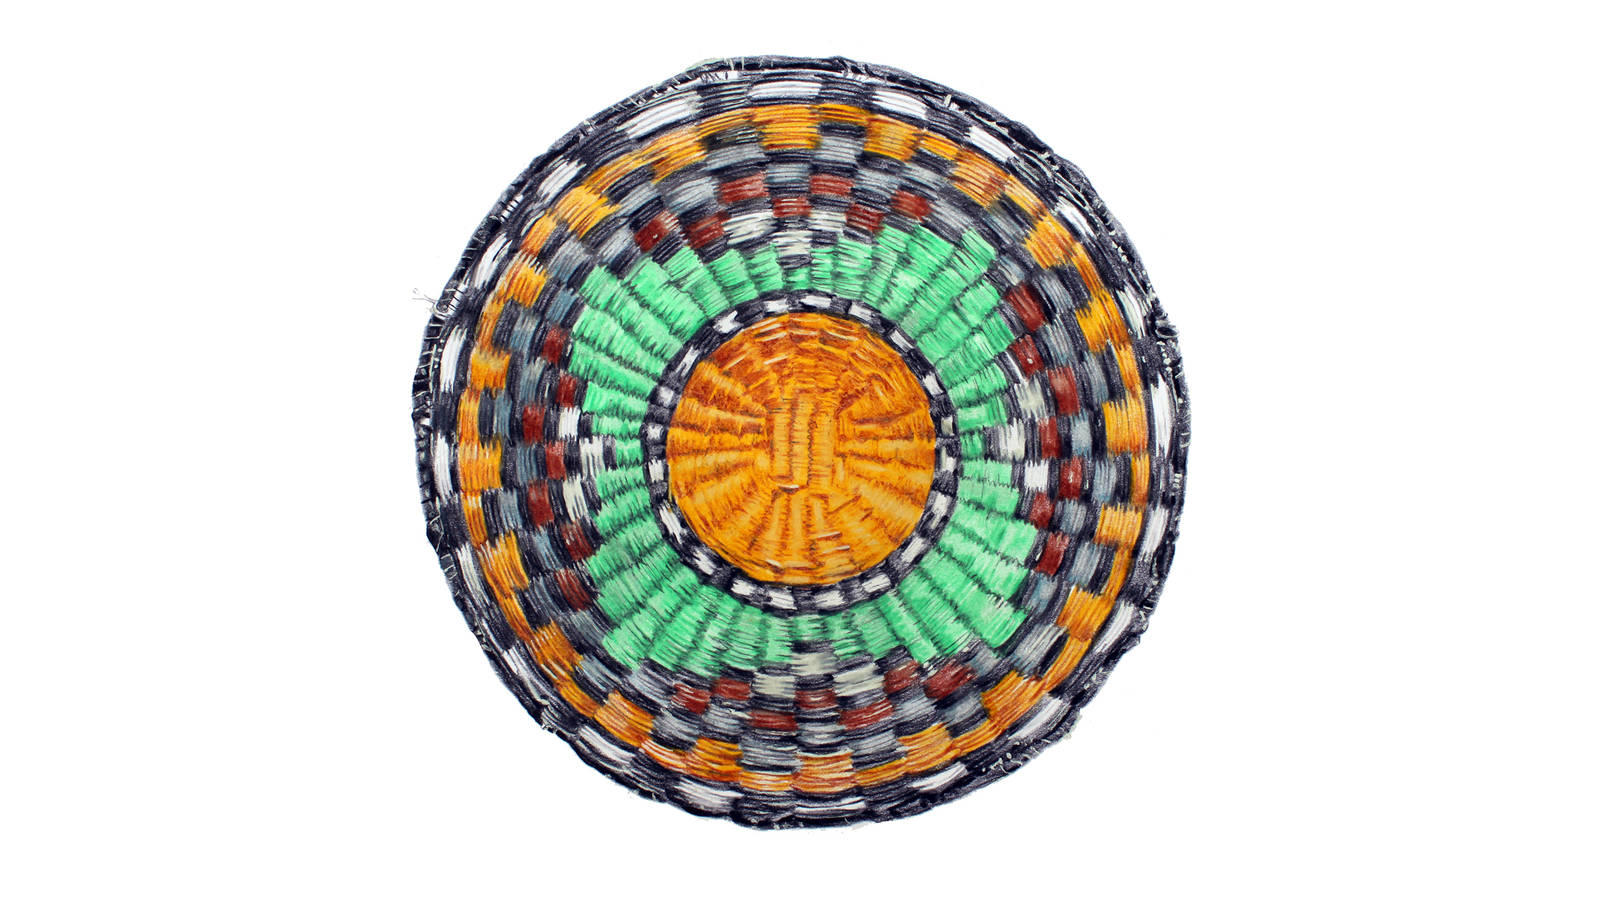 """<h3 style=""""text-align: center; padding: 50px;""""><span class=""""text-Intro-style"""">A woven tray at Hubbell Trading Post. Known as Hopi plaques, these trays are made by Hopi women from Munqapi and the Third Mesa area. Colored pencil on paper, 2019.</span></h3>"""